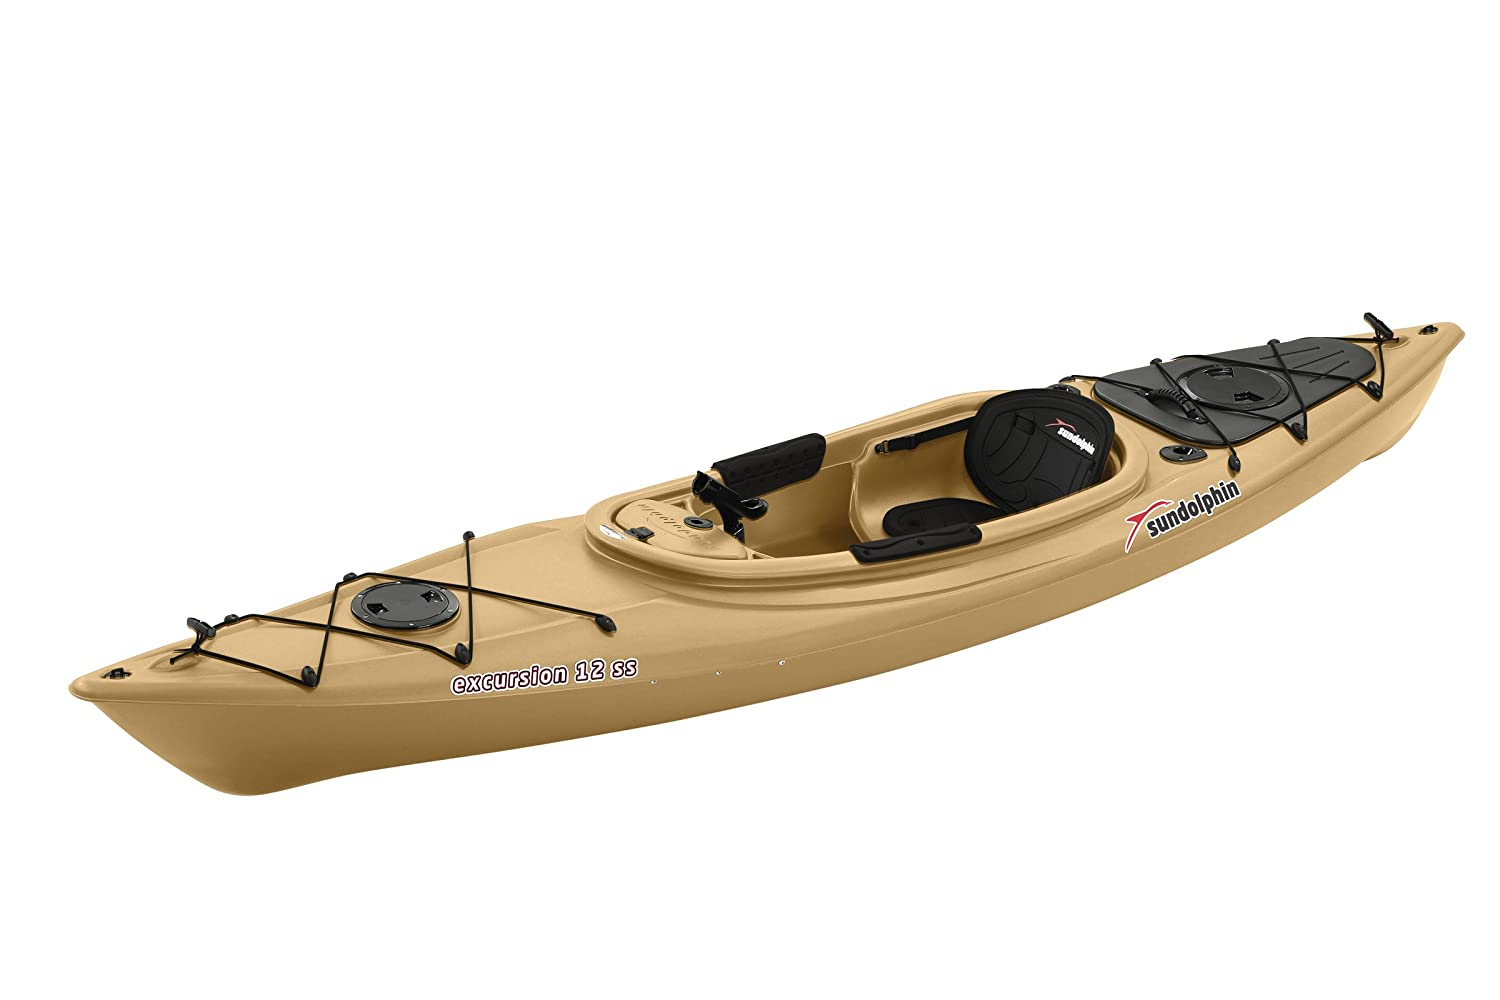 Sun dolphin excursion sit in fishing kayak olive 12 feet for Sit on vs sit in kayak for fishing